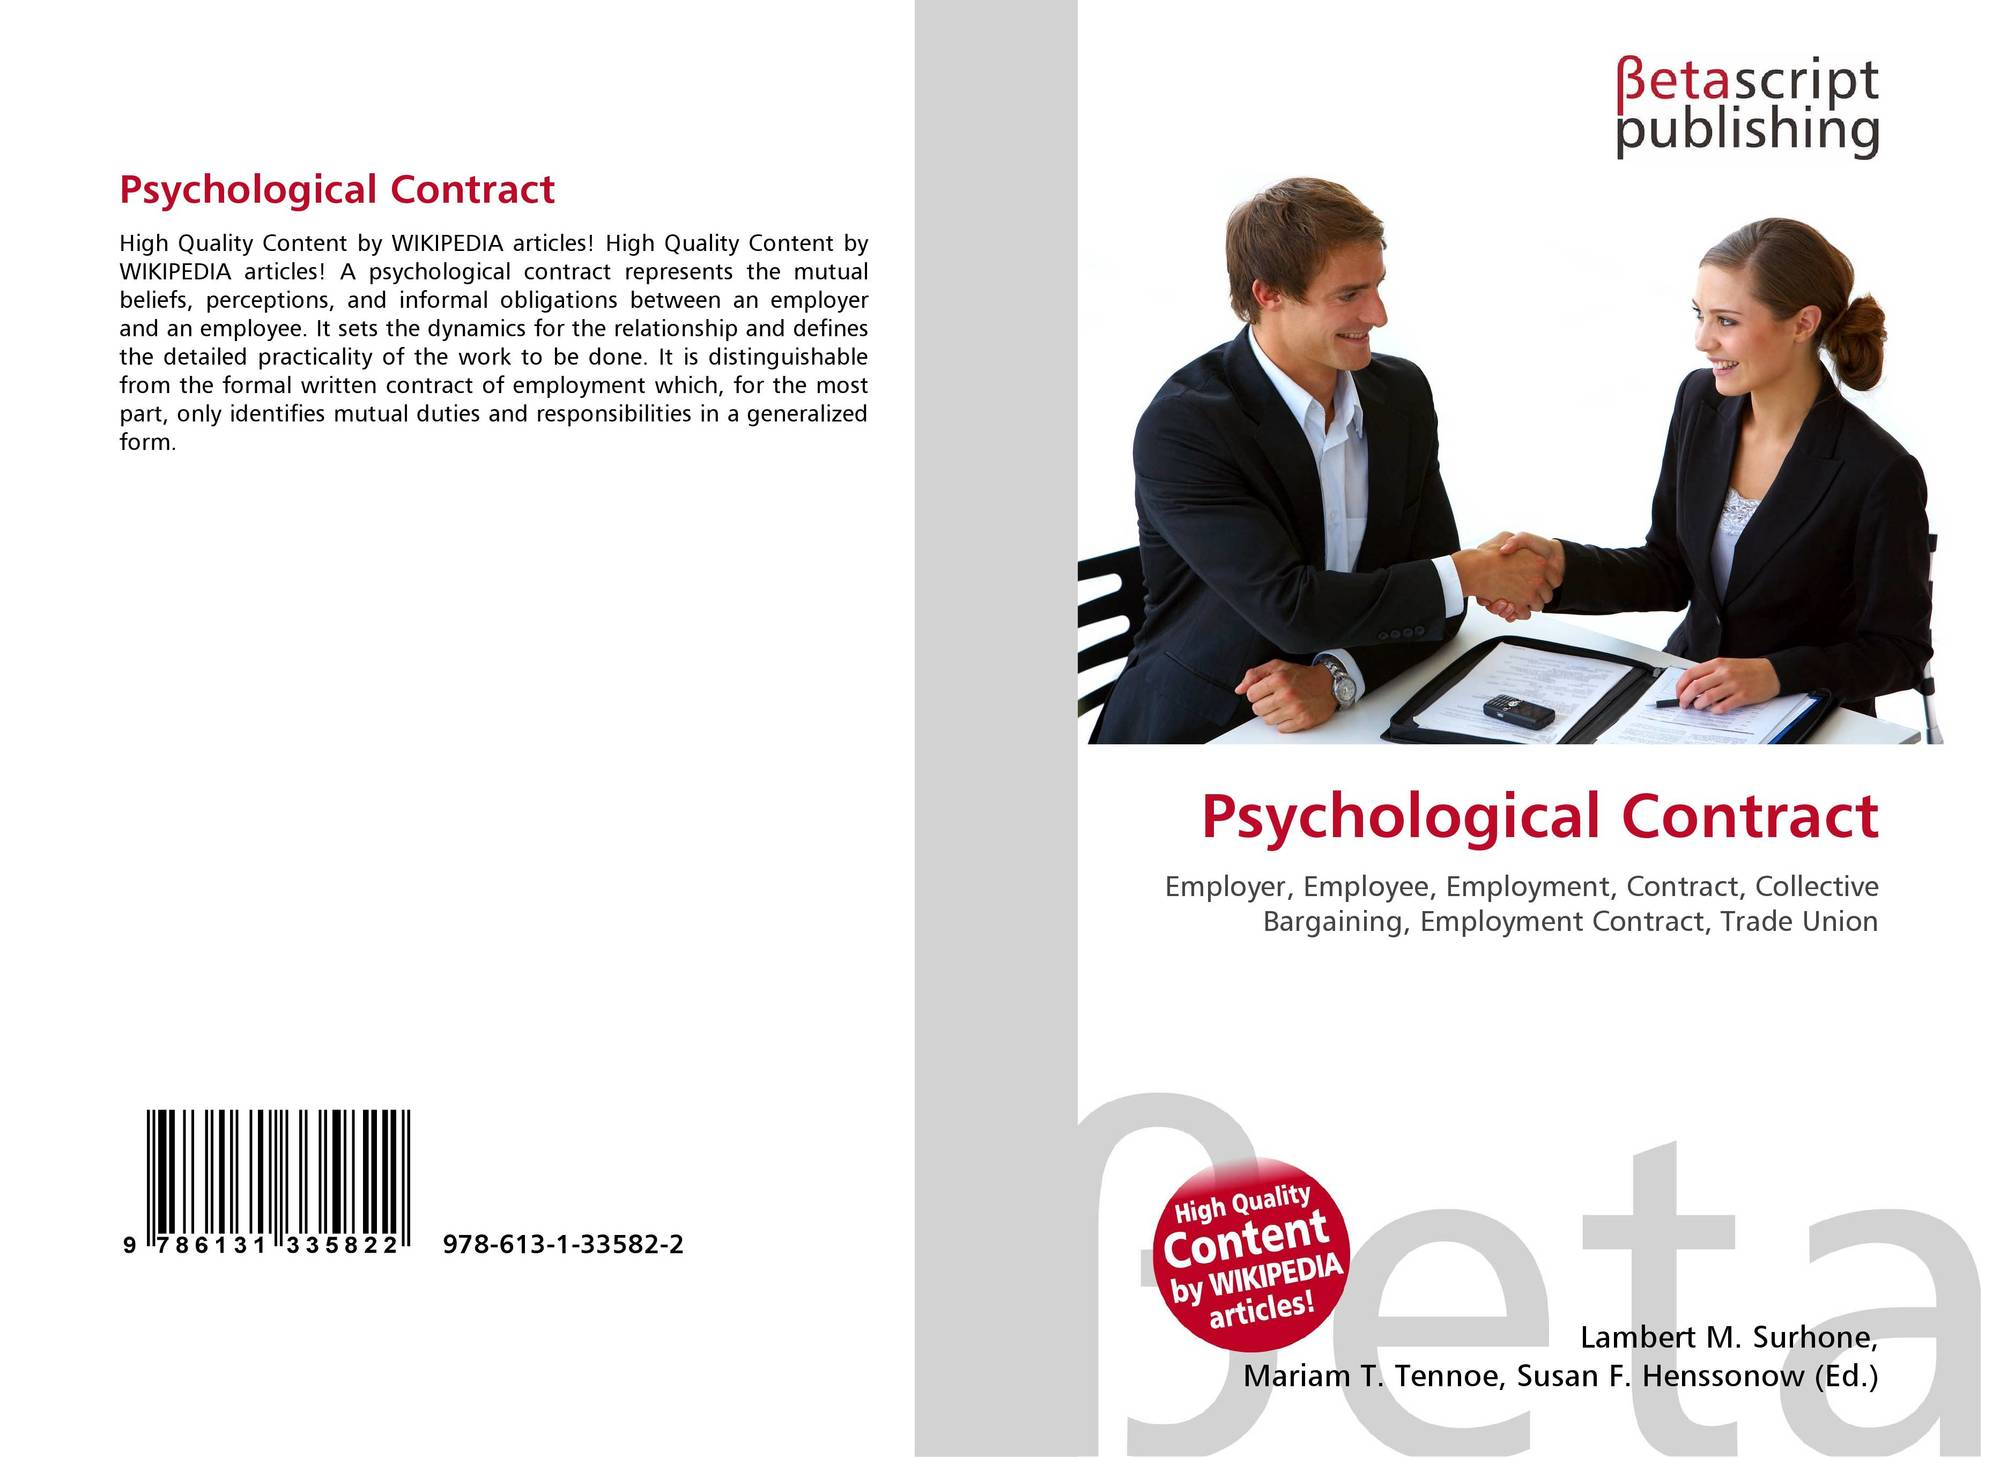 psychological contract essays The william and flora hewlett foundation (hewlett) is sponsoring the automated  student assessment prize (asap) hewlett is appealing to data scientists and.